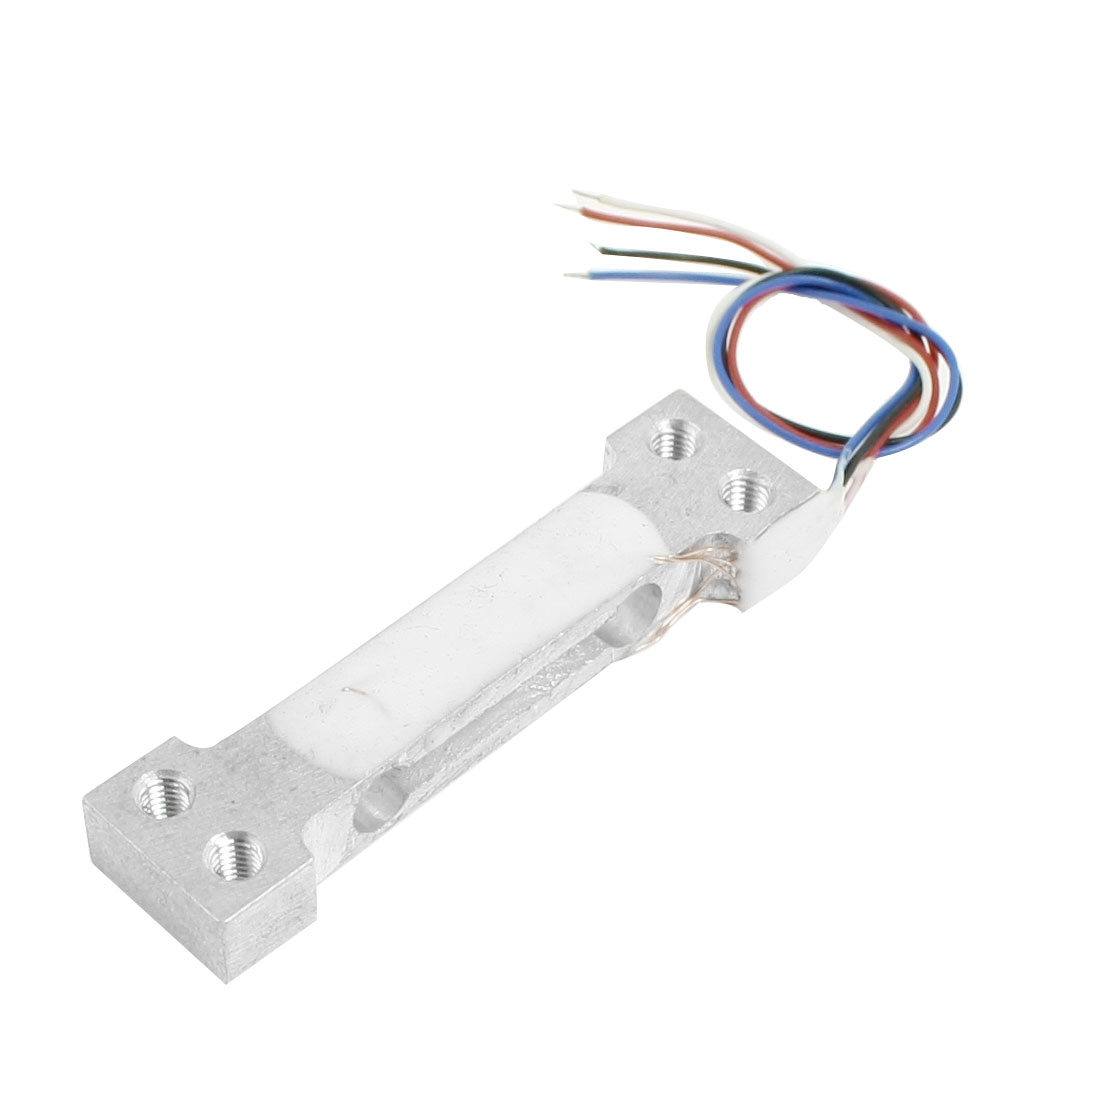 500g Capacity Load Cell Aluminium Alloy Weighing Sensor